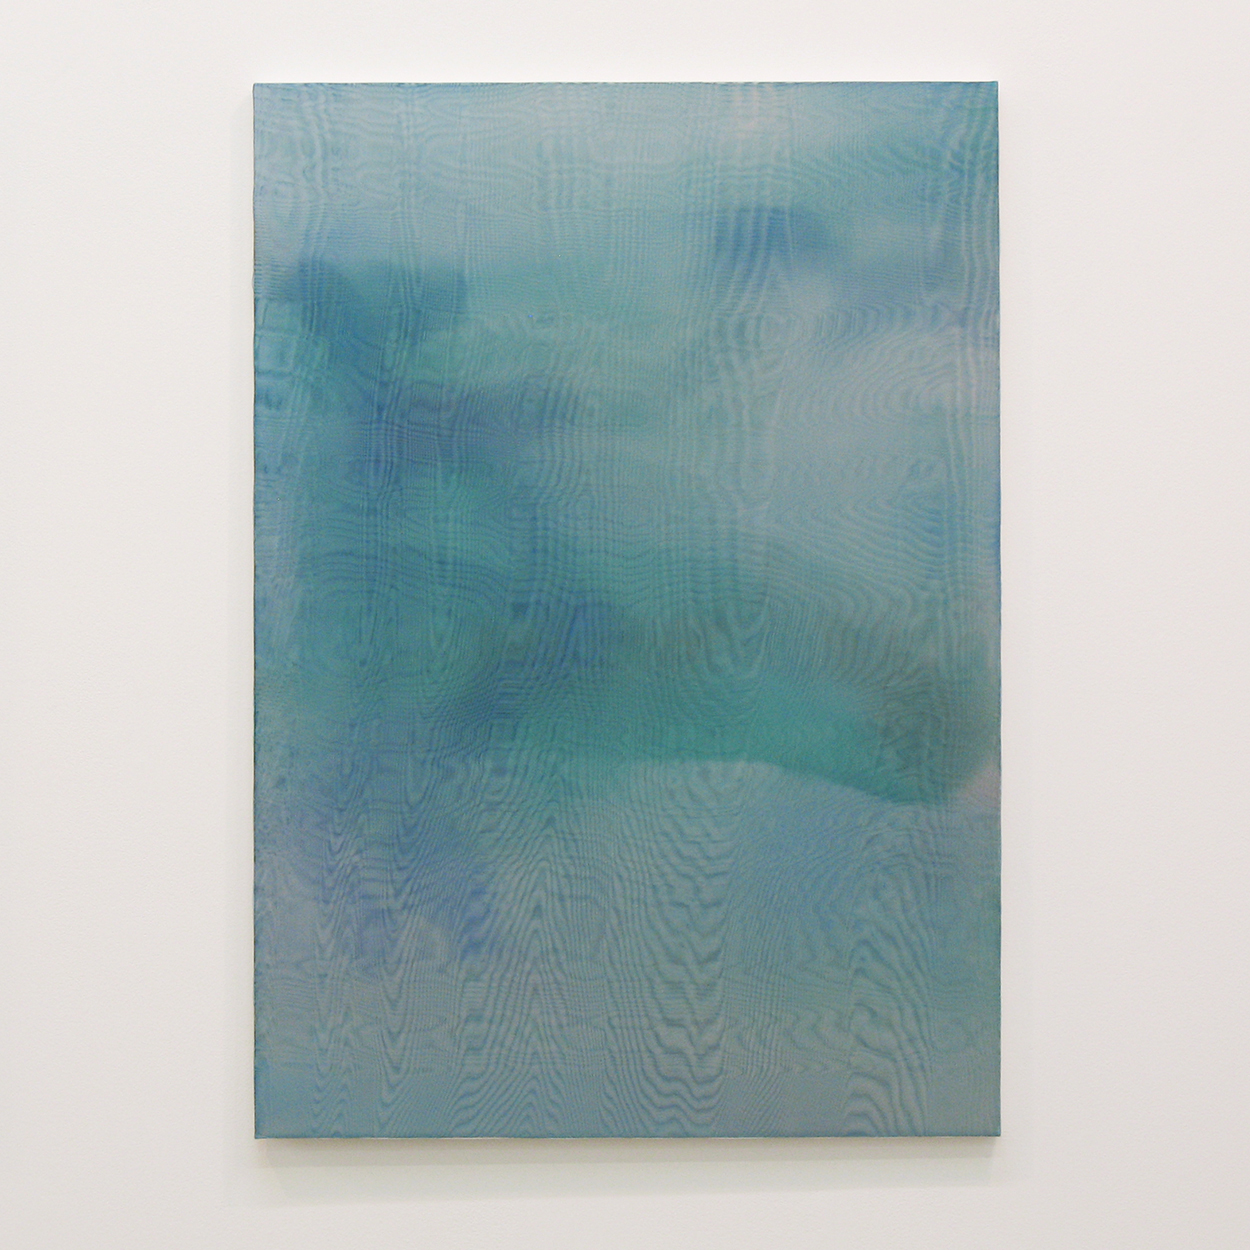 水生夢 (aquatic dream)|panel, stainless steel sheet, glass organdy, acrylic|840  x 594 mm|2009